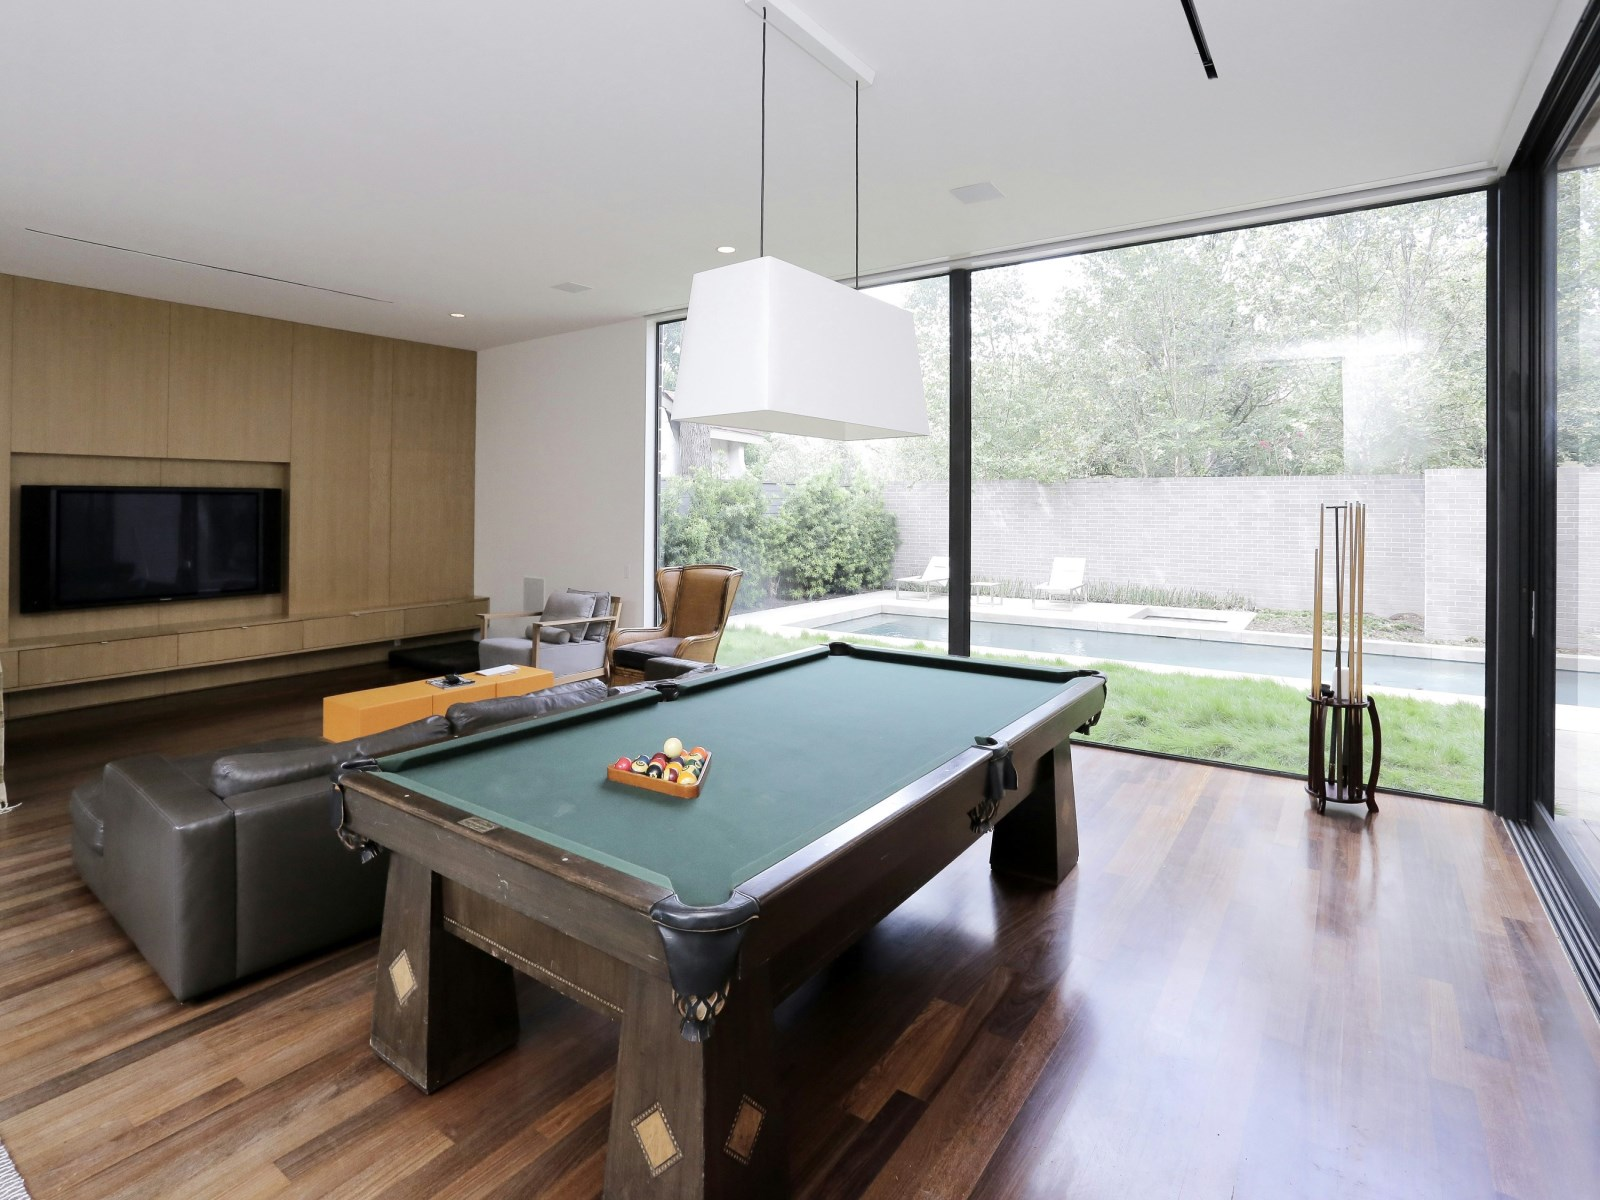 Home Game Room Inspiration - A home with formidable architecture and a light interior